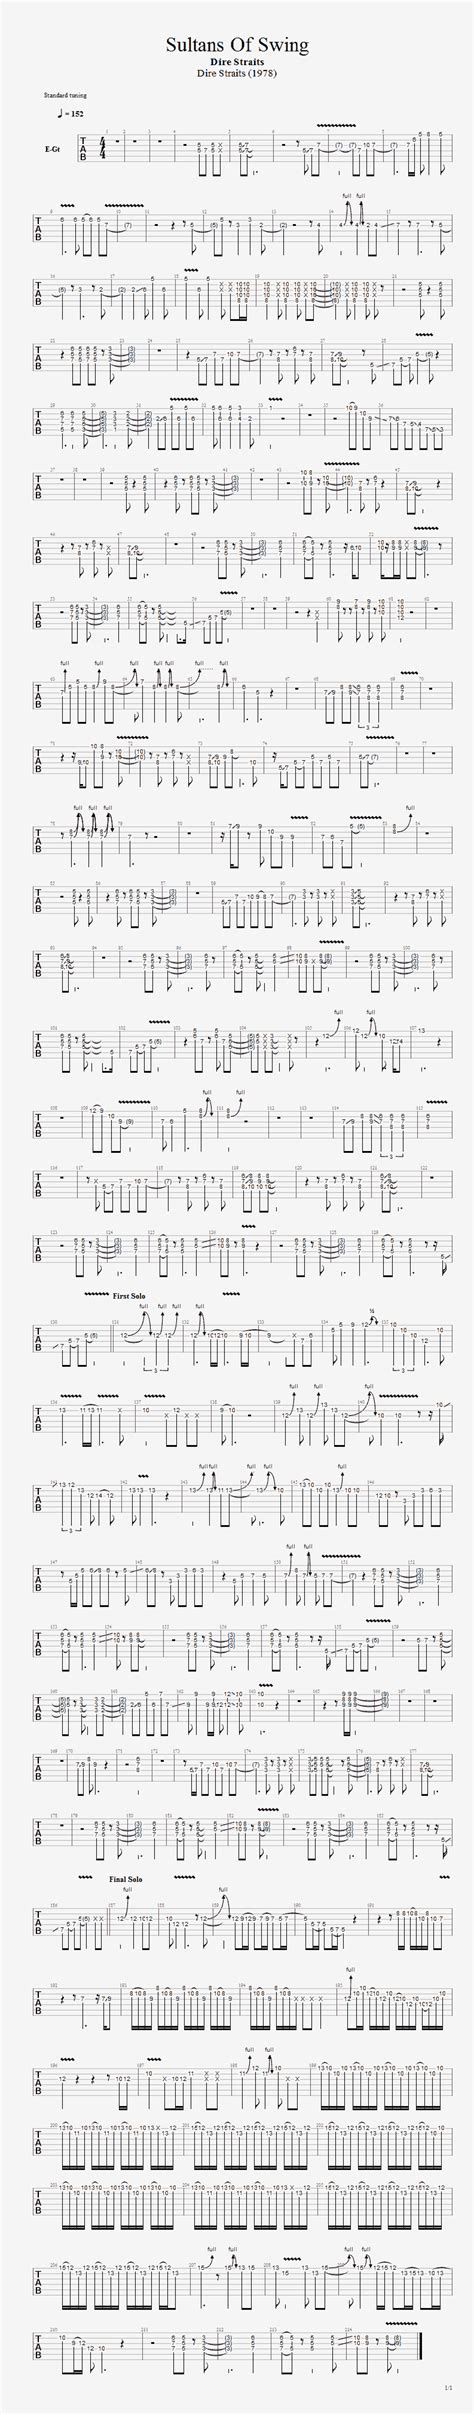 sultan of swing guitar sultans of swing guitar tab guitarnick